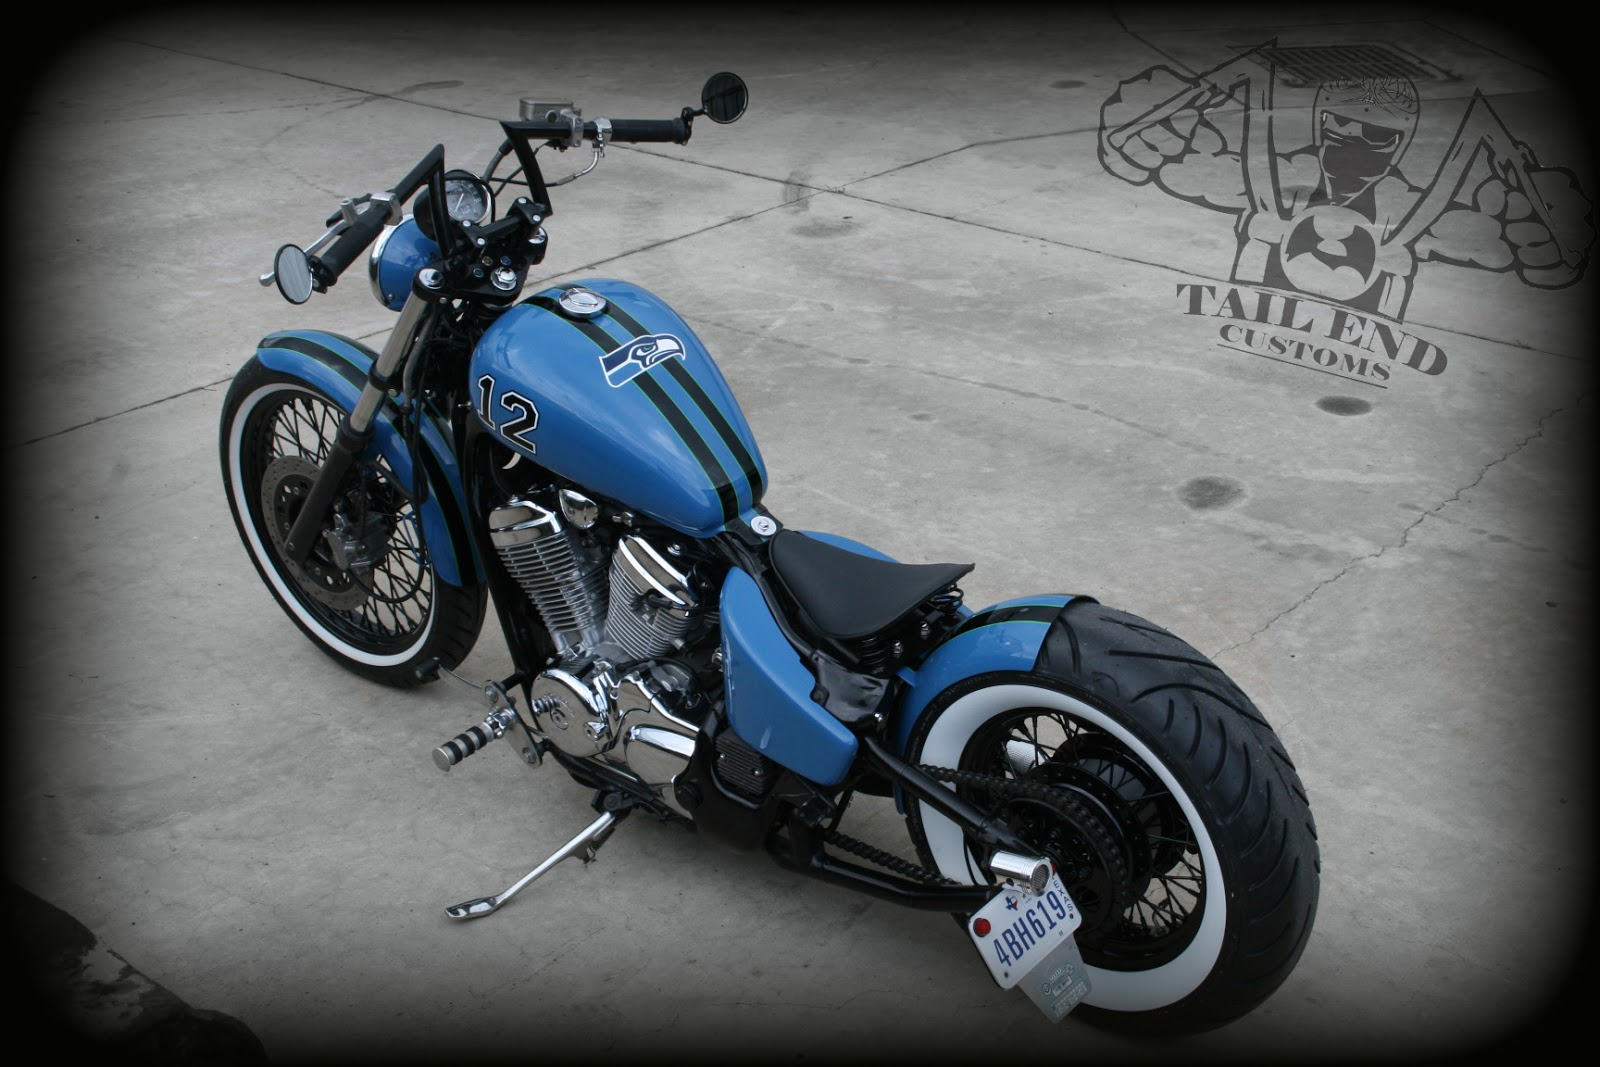 bobbers 650 vs 1100 with Honda Shadow 600 Custom Vlx Chopper on 2zfbcyc2ong likewise Bobber Motorcycle Mods furthermore Vbpicgallery furthermore CKa4aW0CsVE as well Honda Shadow 600 Custom Vlx Chopper.